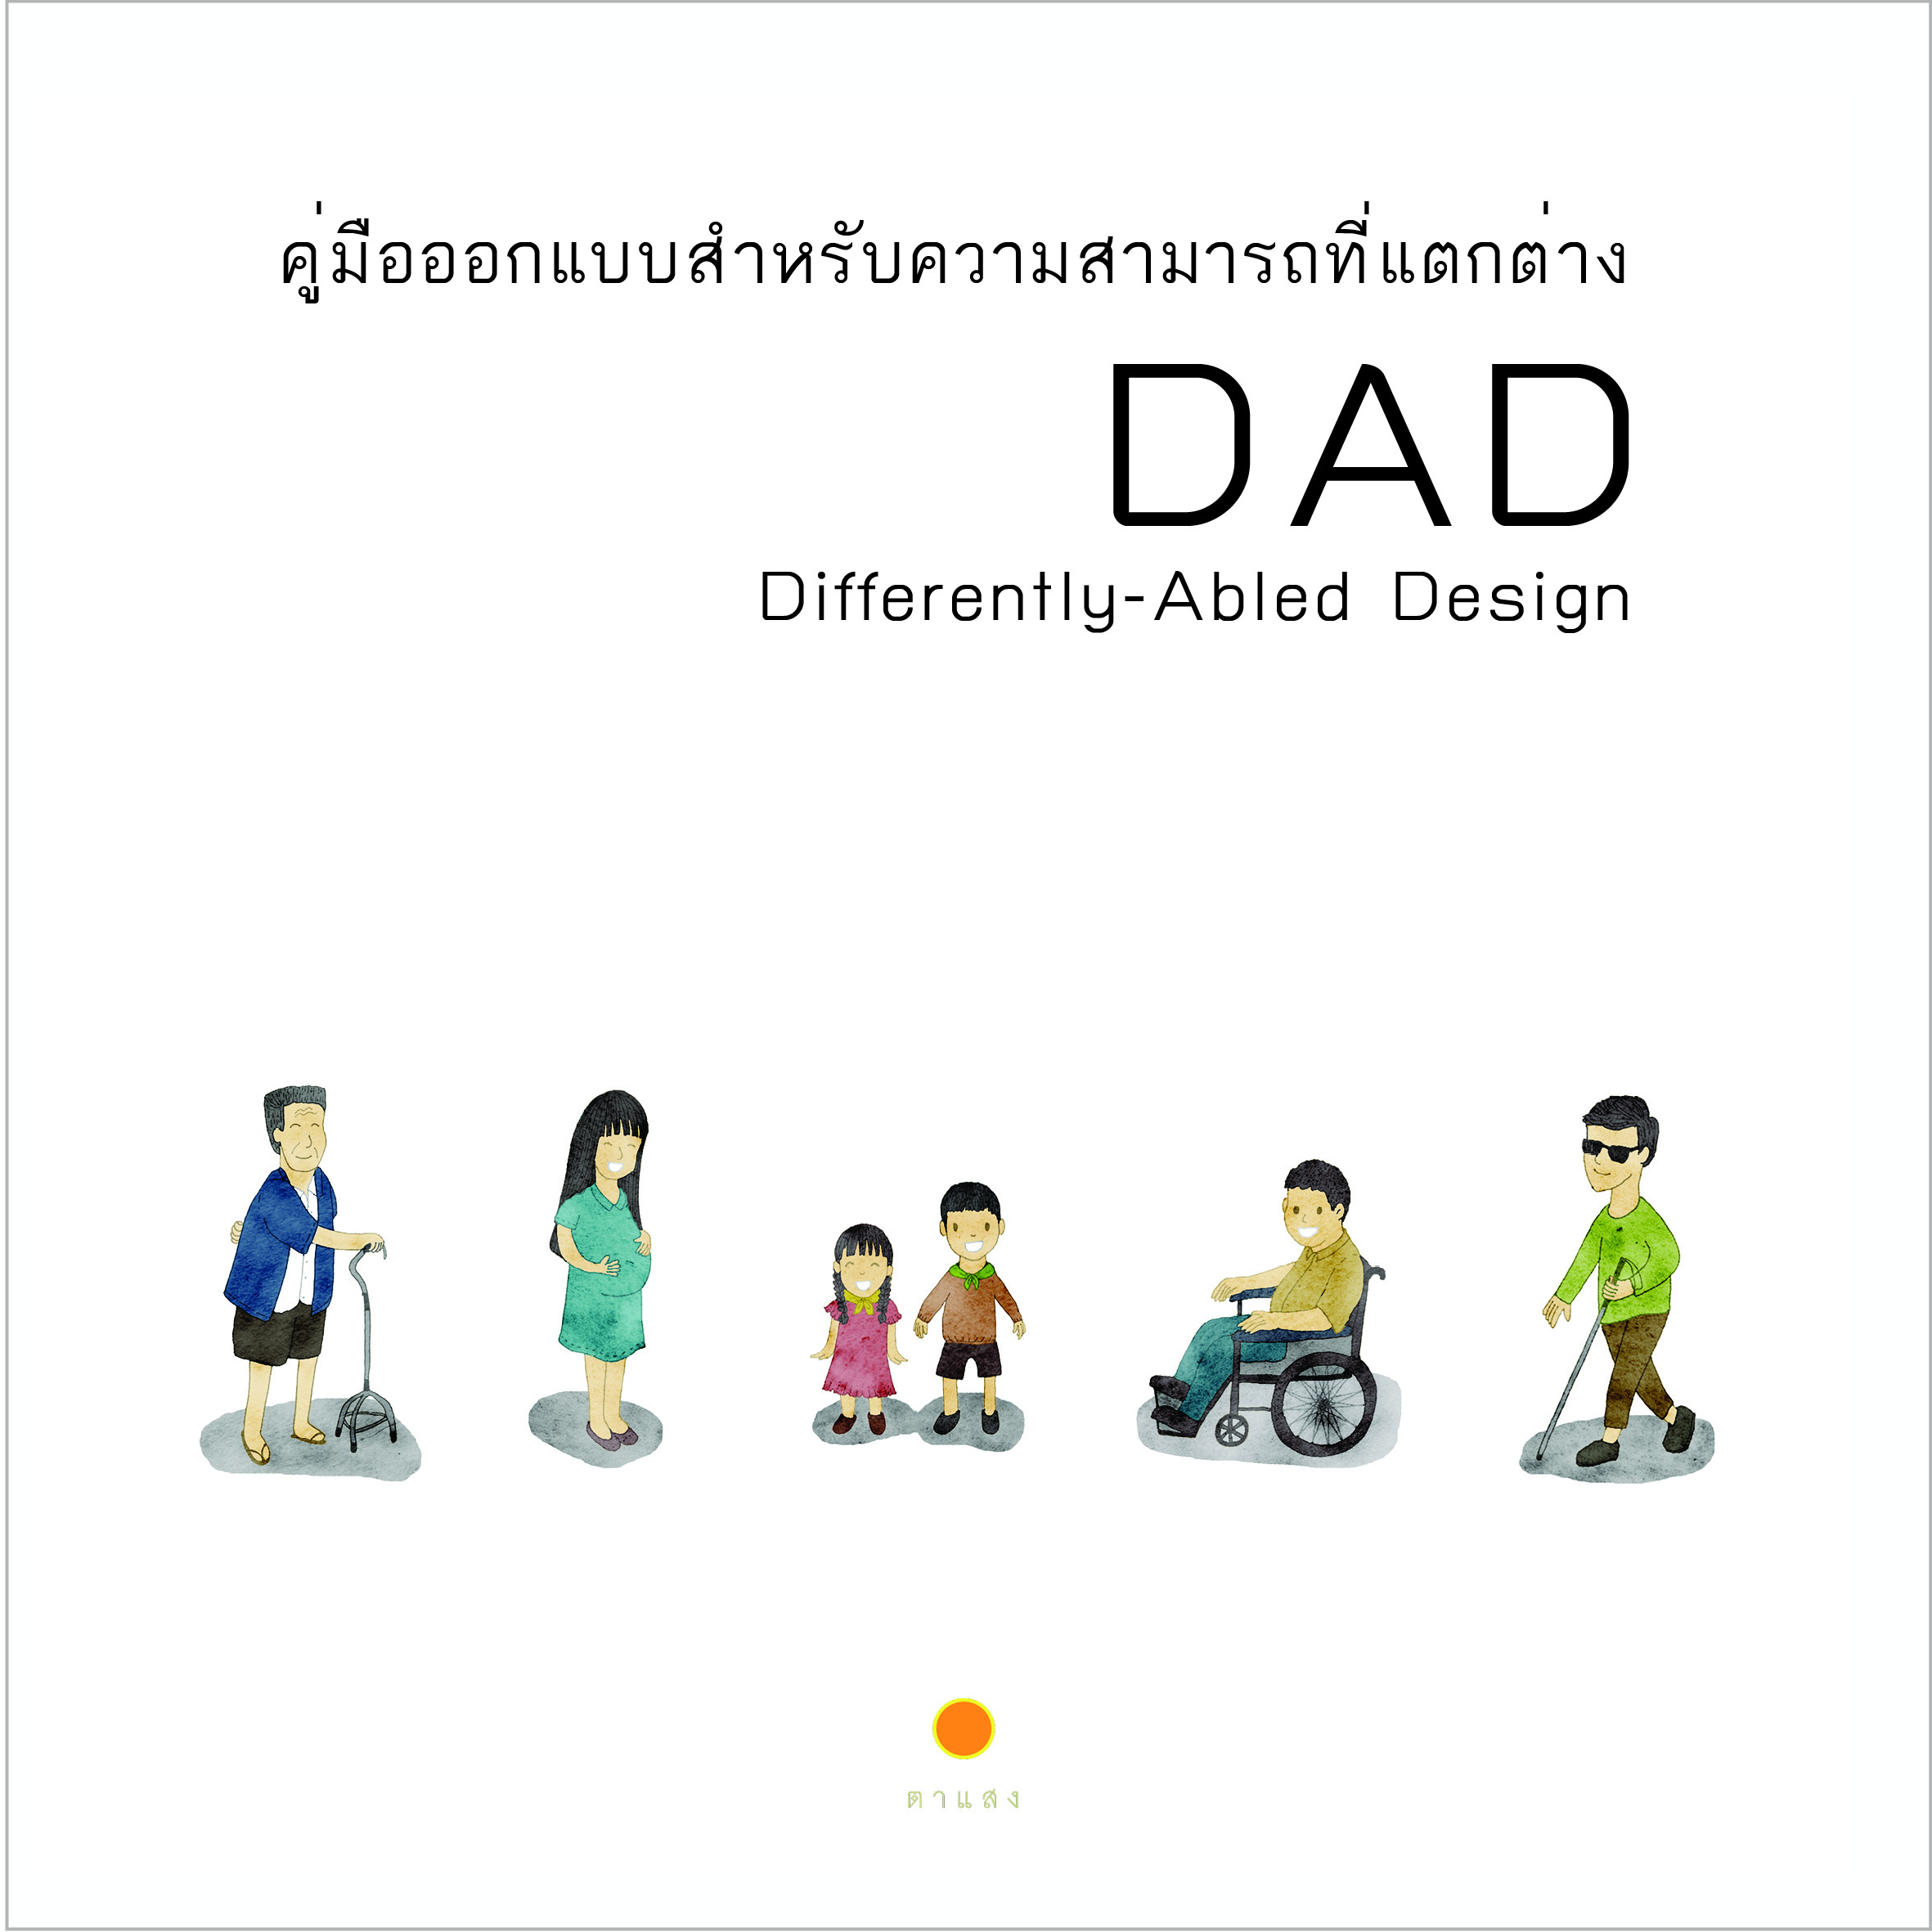 Differently-Abled Design DAD:  Barrier-free design for all ages and abilities